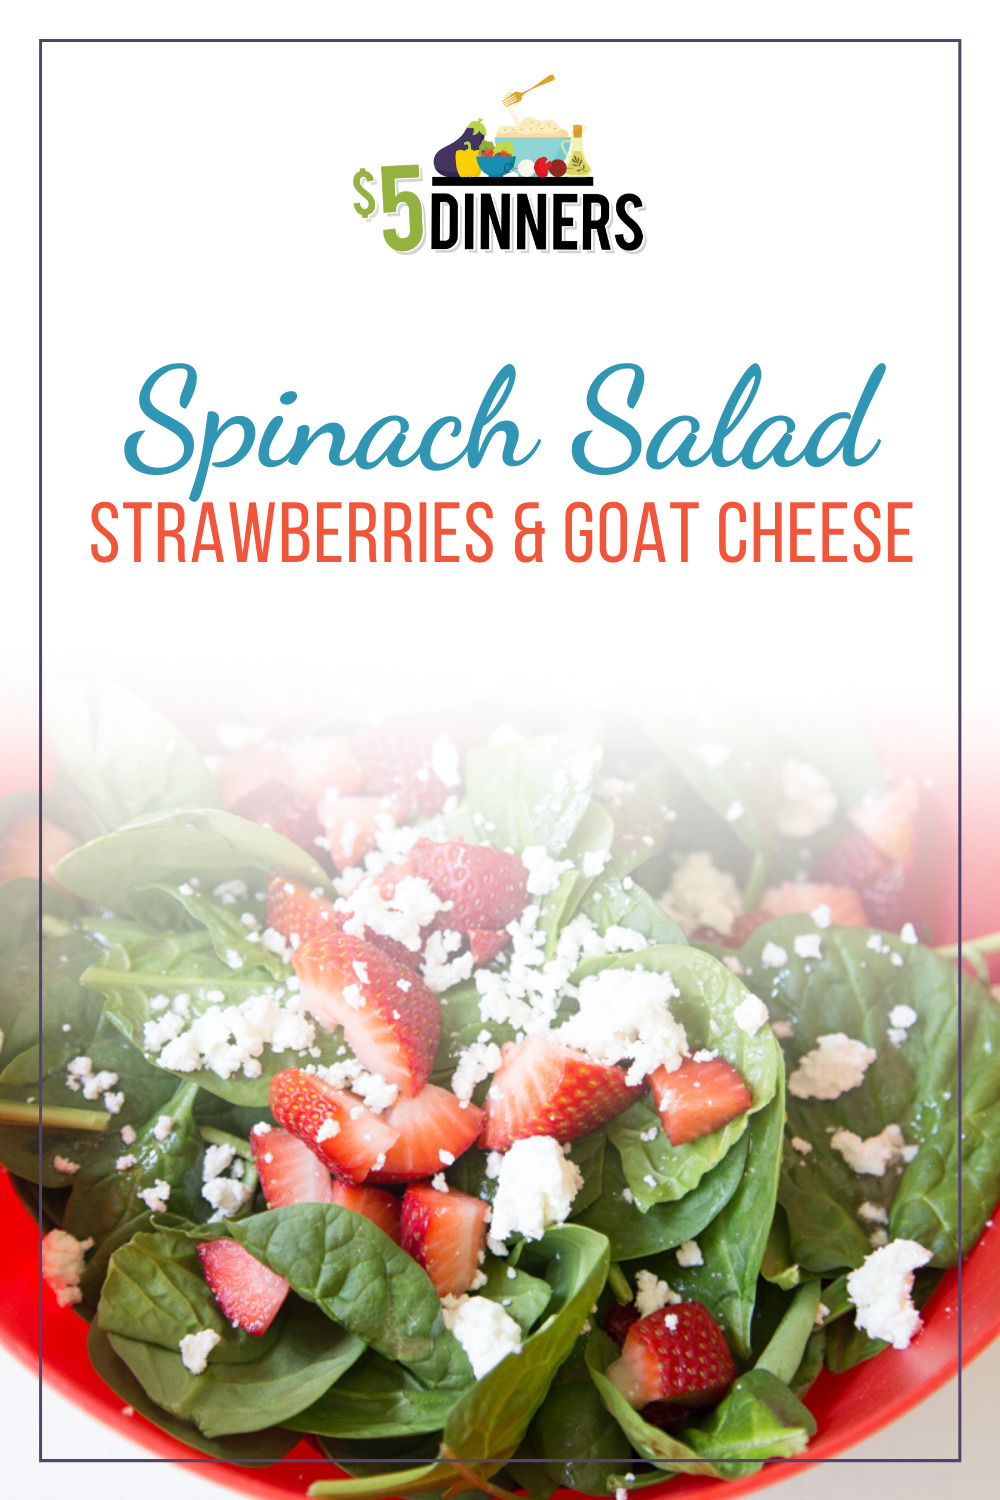 spinach salad with strawberries & goat cheese